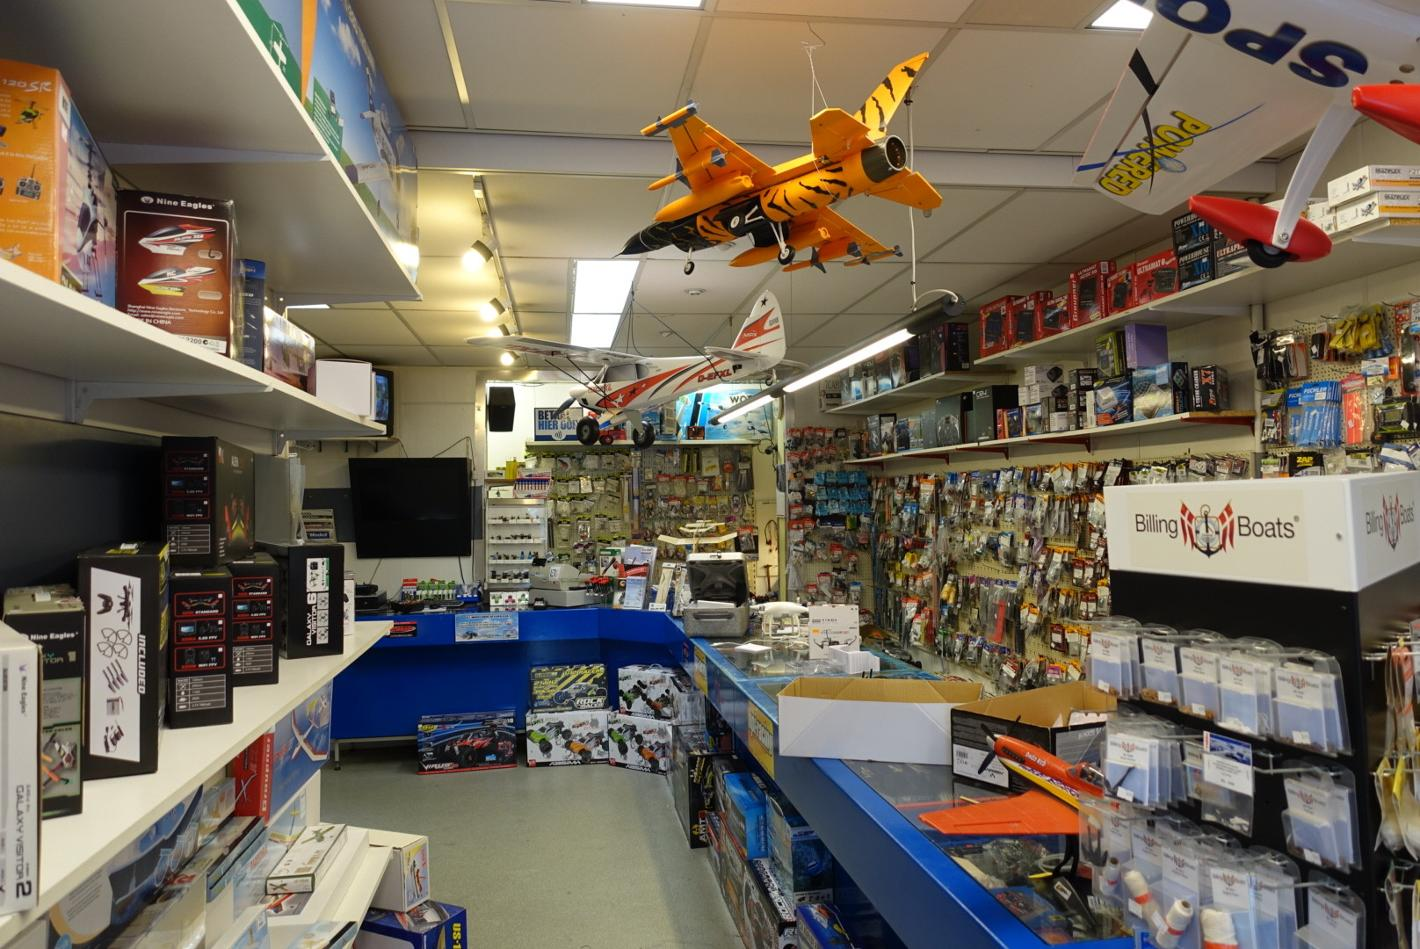 Photo De Vliegershop in Leiden, Shopping, Buy gifts, Buy hobby stuff - #3